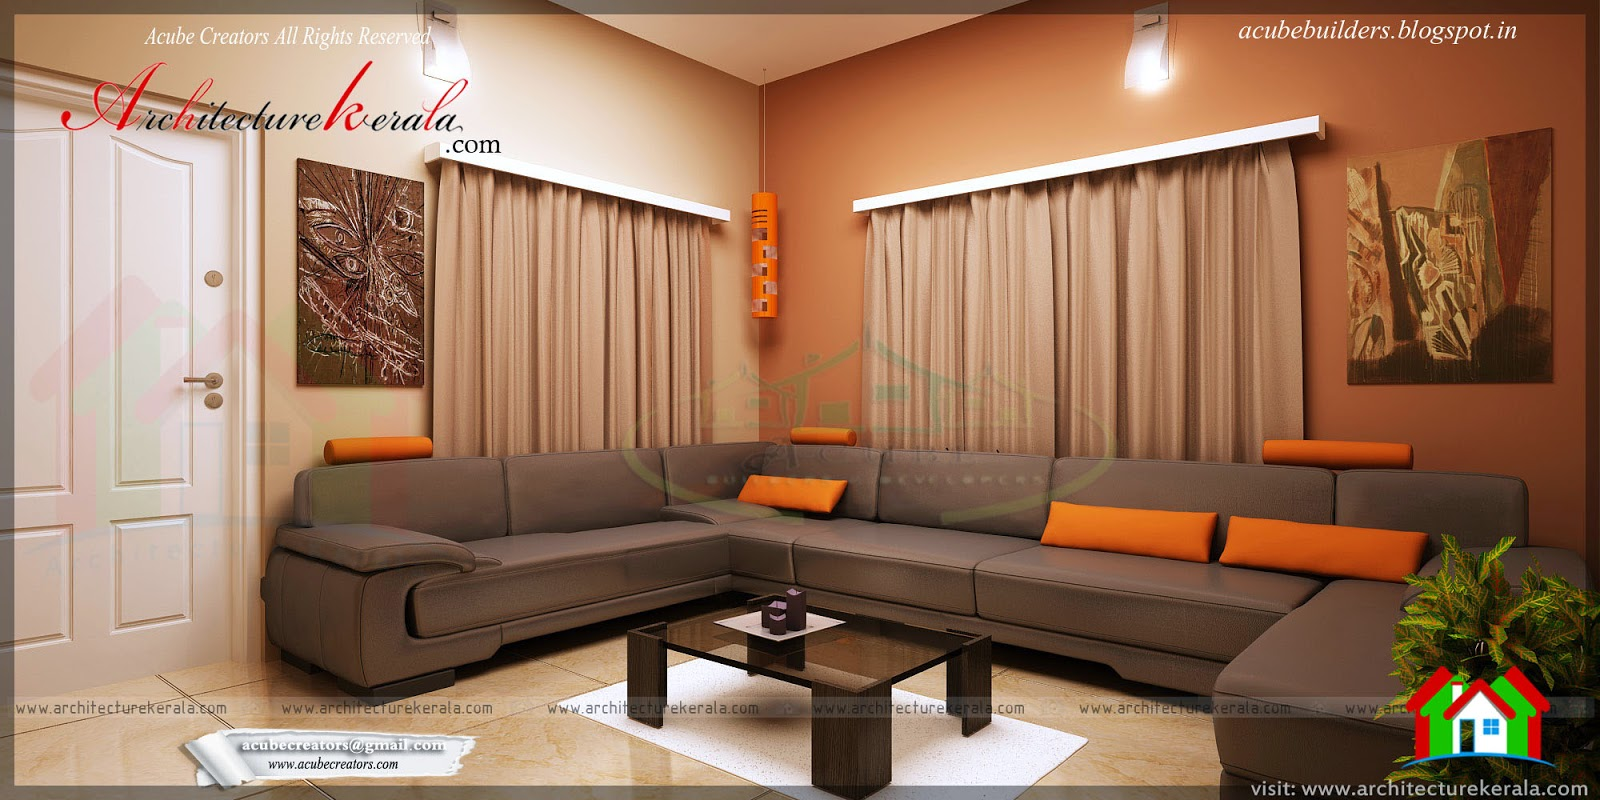 Drawing room interior design architecture kerala - Room interior designs ...